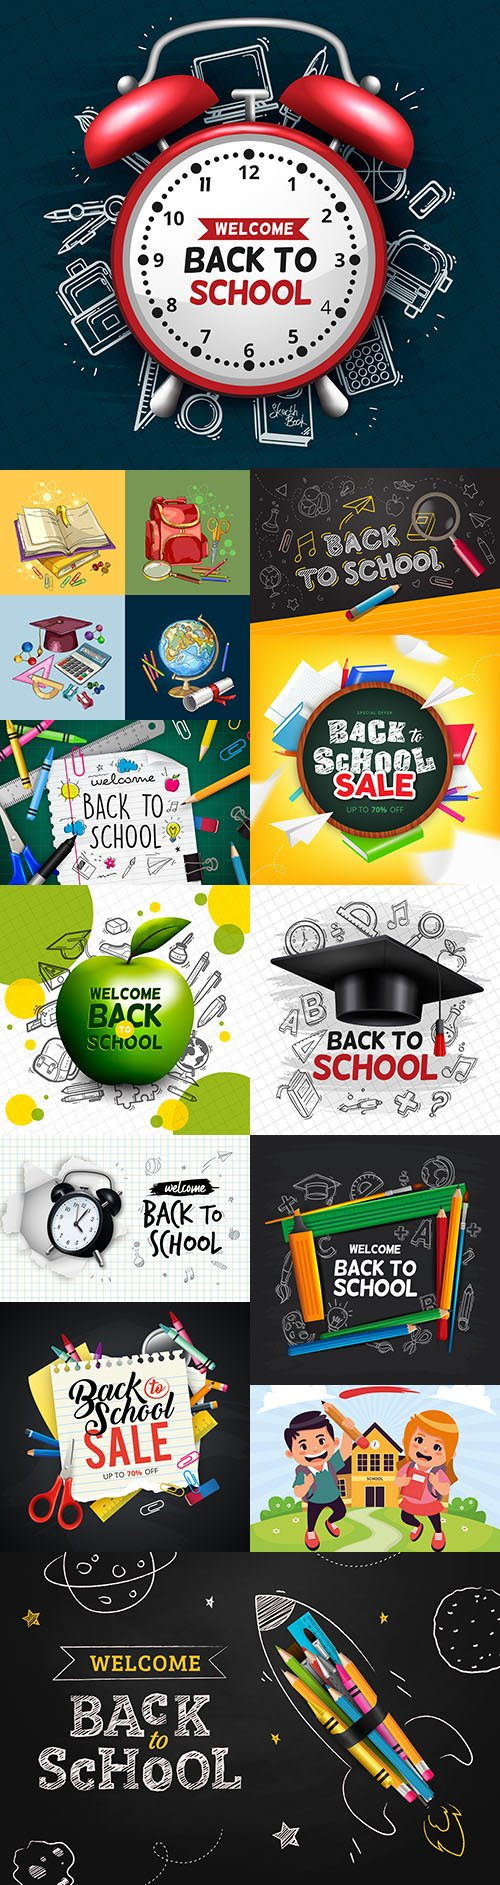 Back to school and accessories collection illustration 40